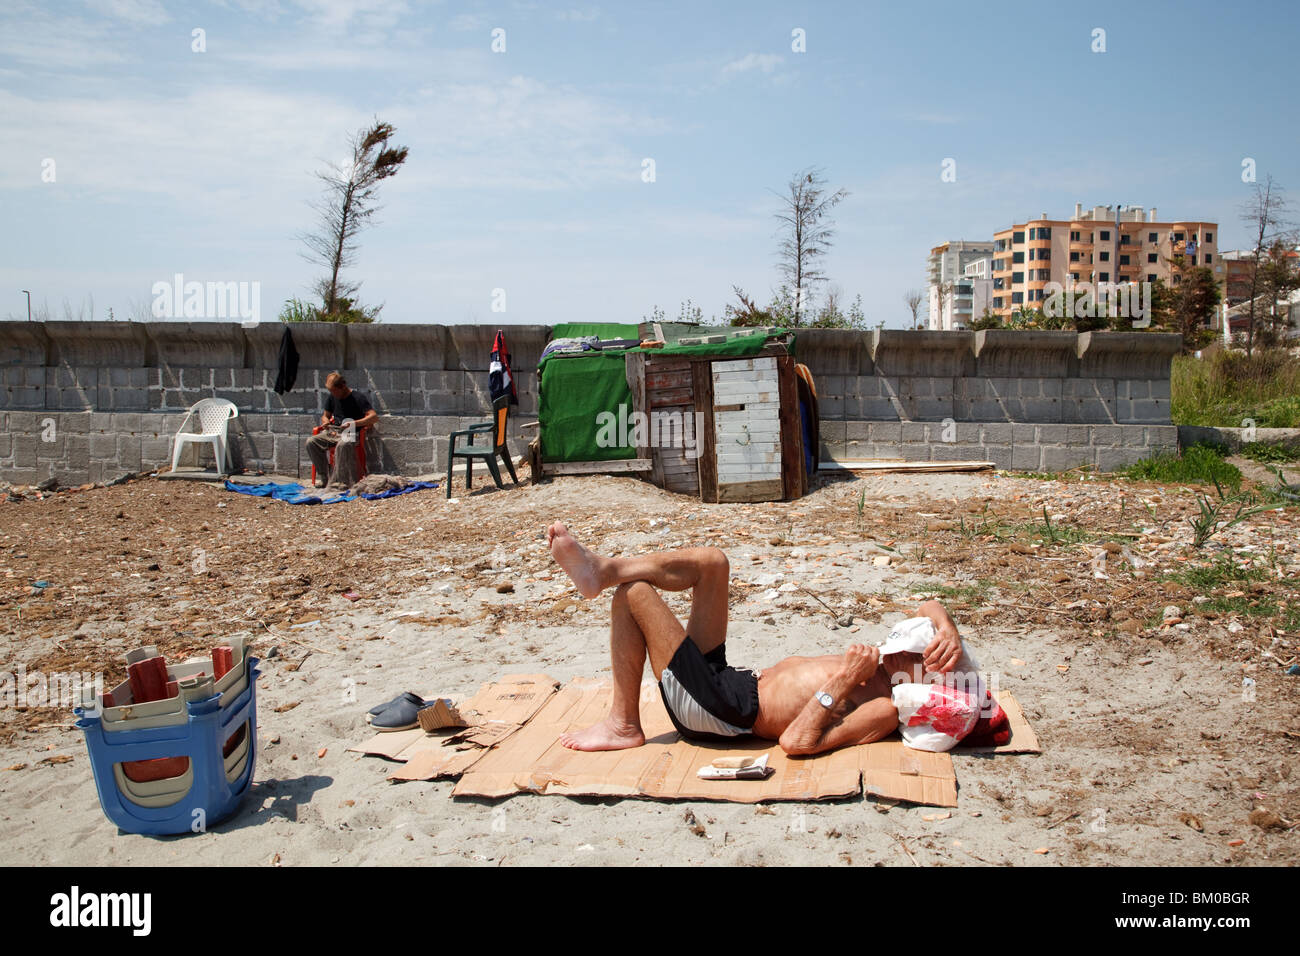 A man sunbathes on a beach in Durres, Albania. - Stock Image